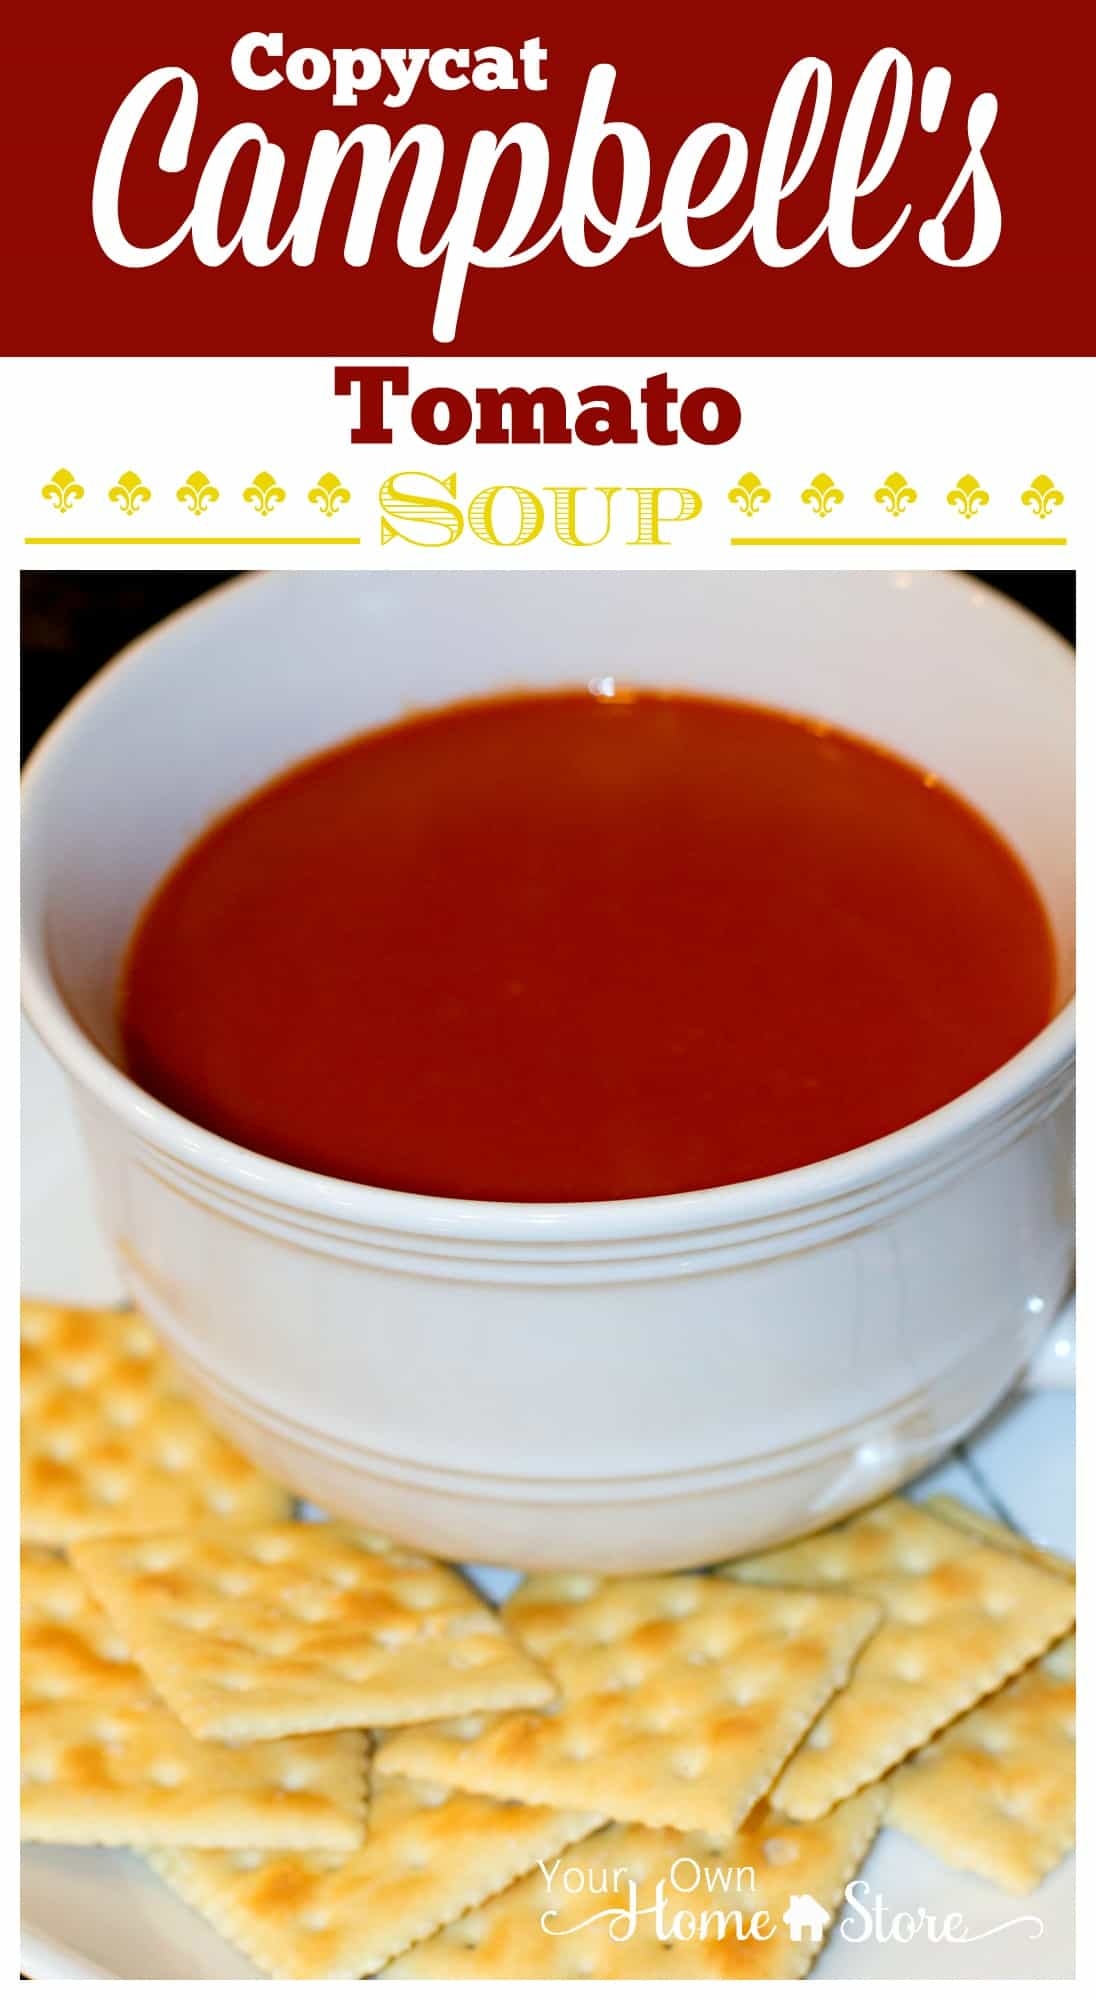 5 Ingredient Copycat Campbell's Tomato Soup Recipe. This is SPOT-ON and has no preservatives! http://simplefamilypreparedness.com/copycat-cambells-tomato-soup/